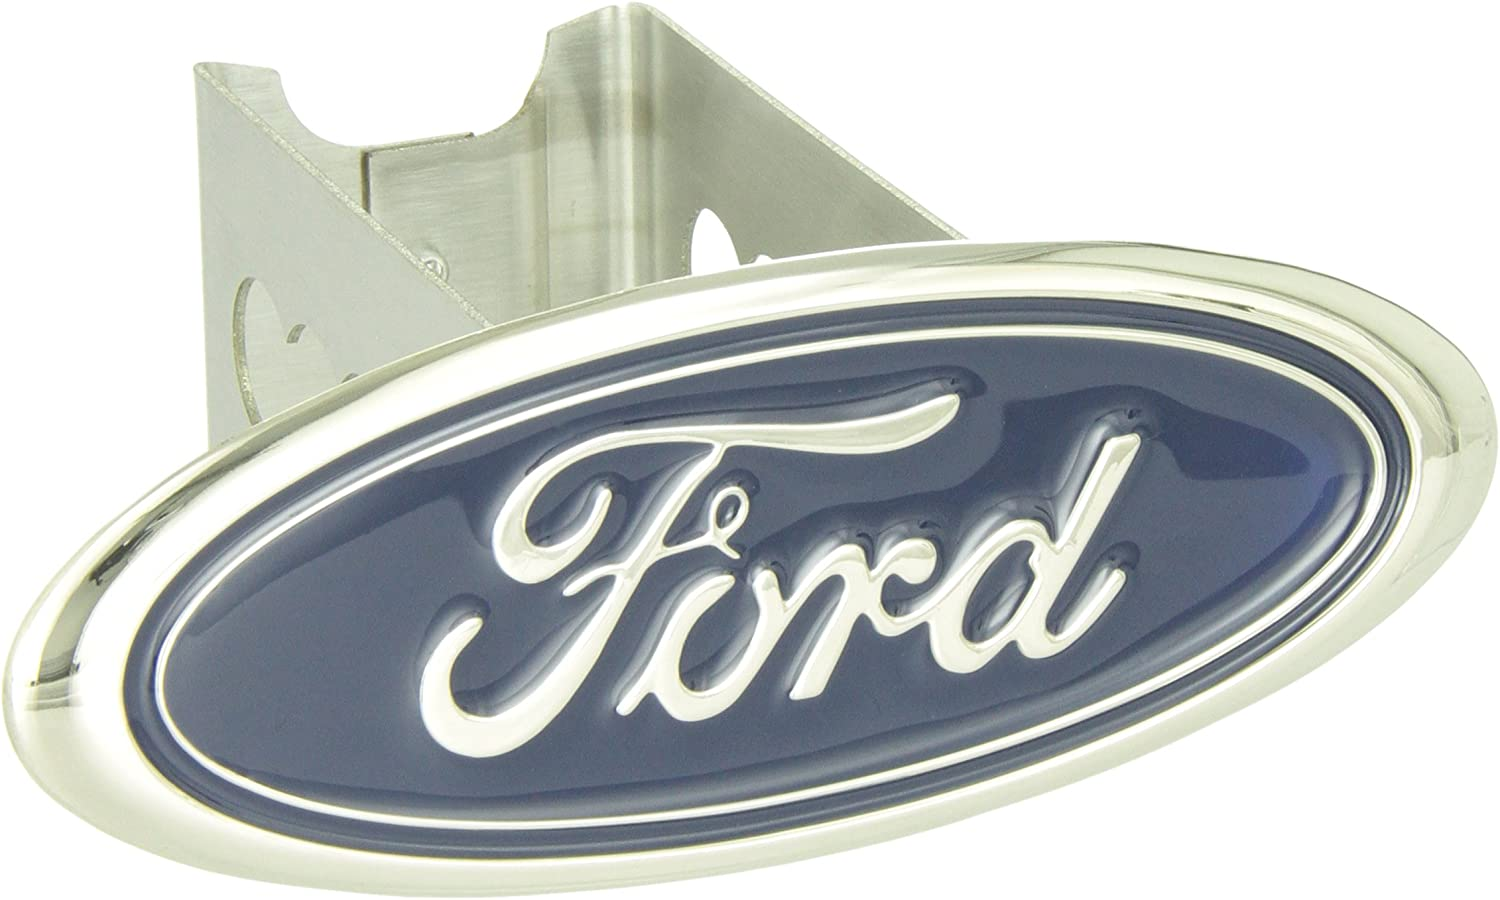 Au-TOMOTIVE GOLD TFORC Ford Trailer Hitch Cover